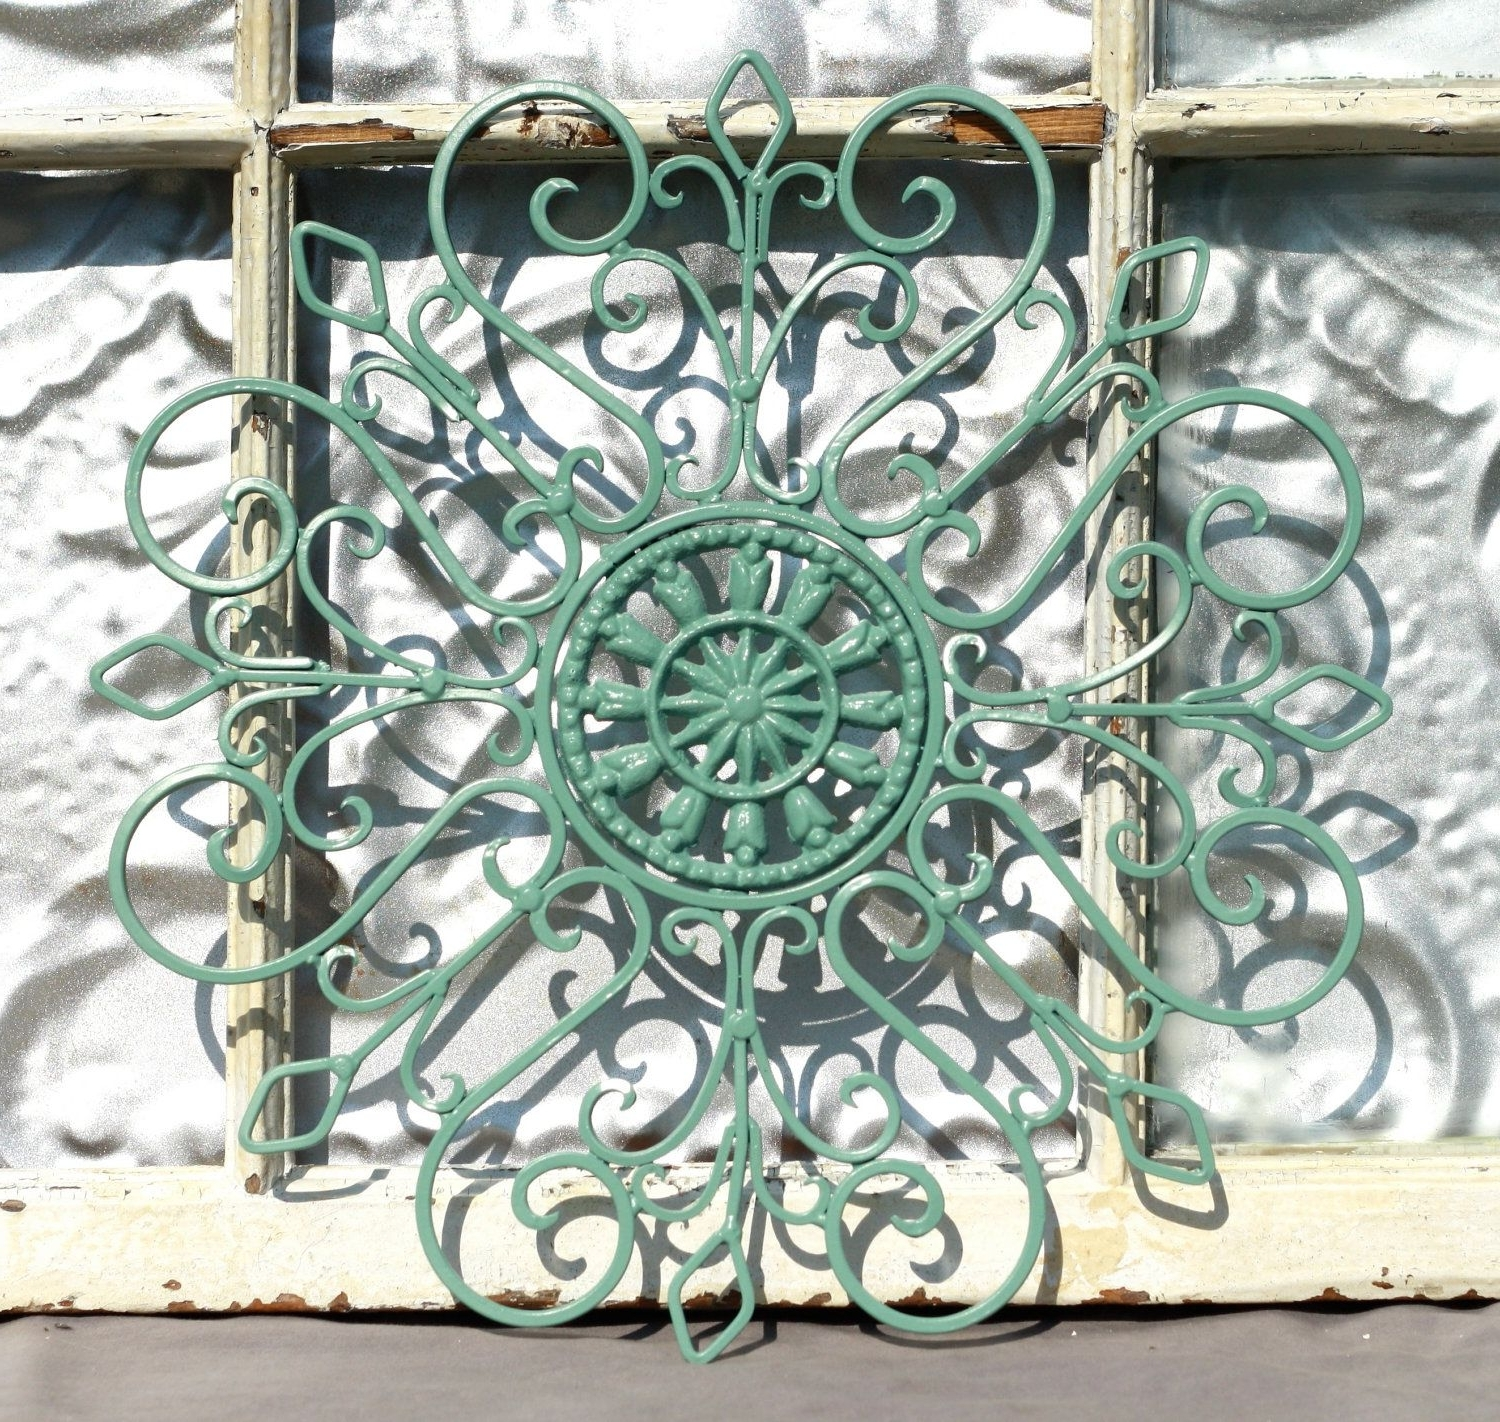 Wrought Iron Garden Wall Art Inside Newest Wrought Iron Wall Decor/ Metal Wall Hanging/ Indoor/ Outdoor Metal (View 12 of 15)